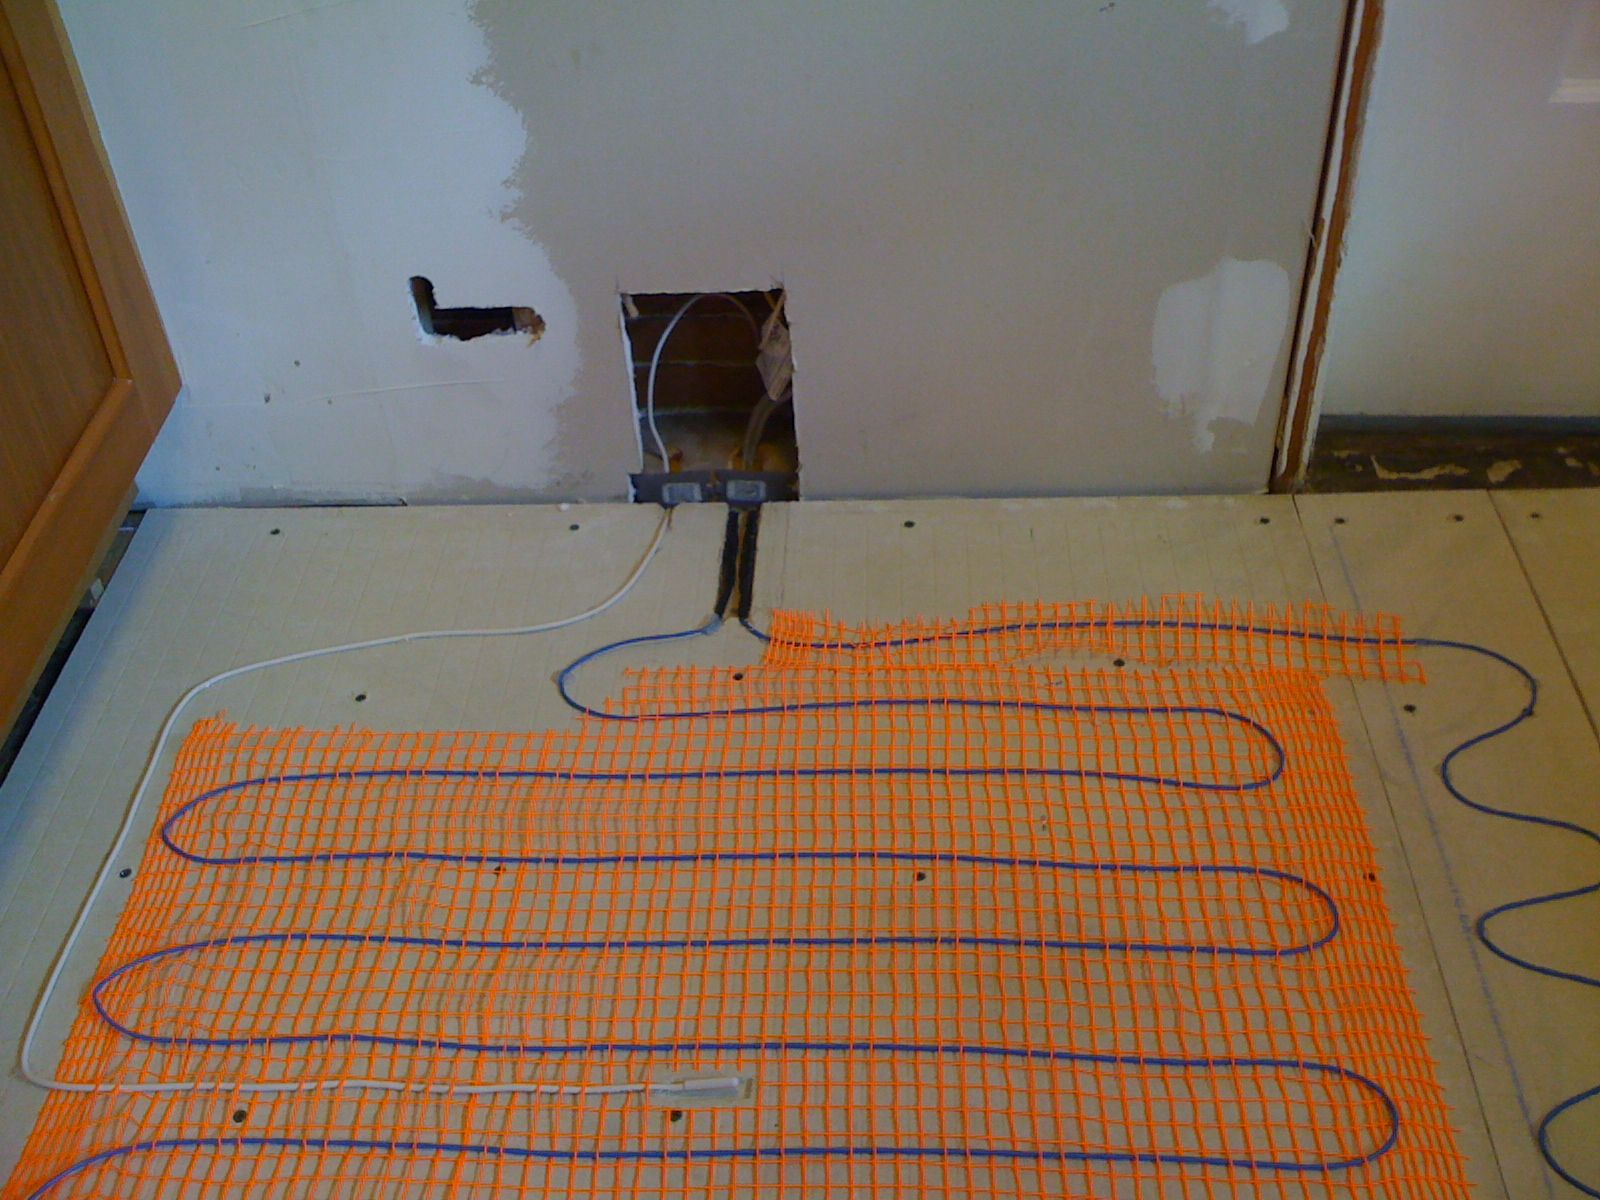 Kitchen diy heated floor and new tile kitchens kitchen diy heated floor and new tile dailygadgetfo Choice Image